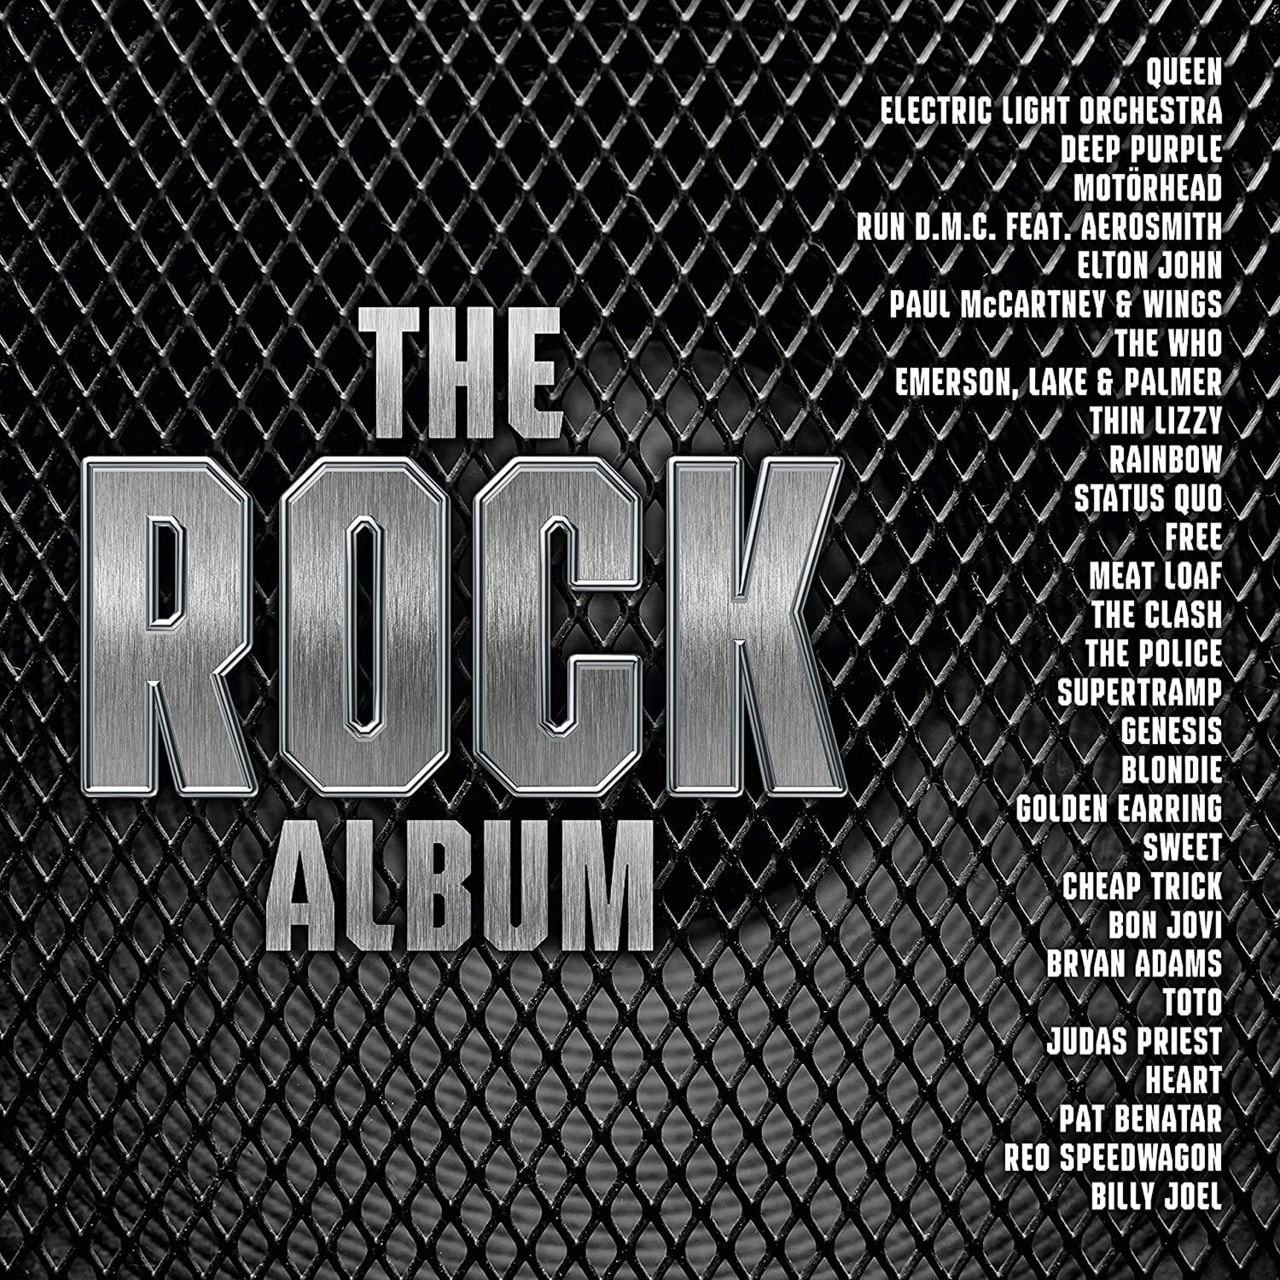 The Rock Album - 1